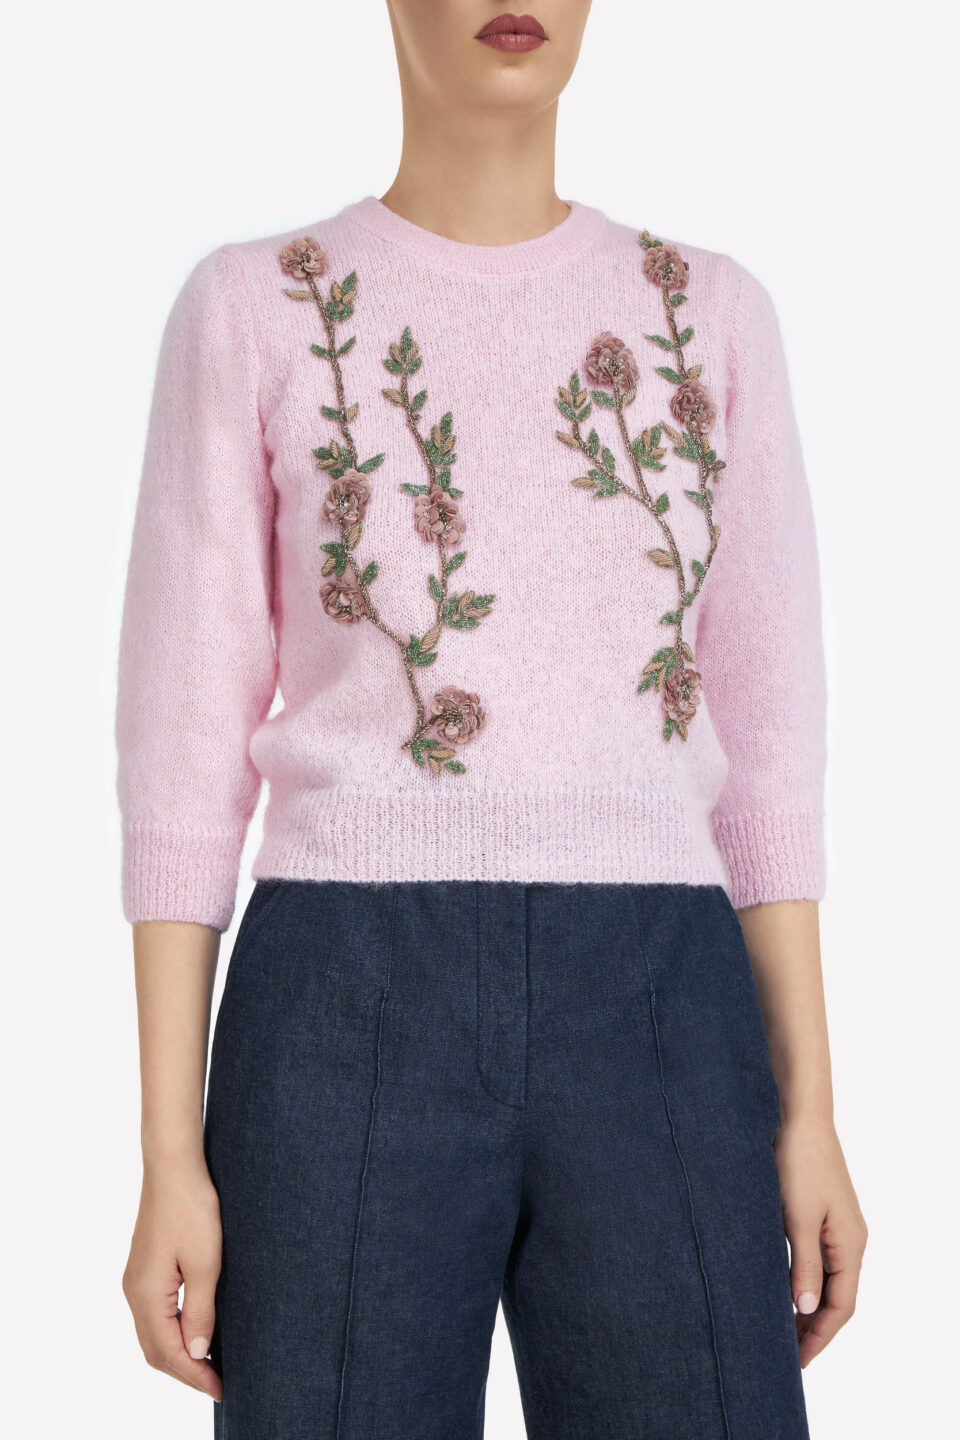 Olivia FW2183 Pink Beaded Flower Appliques